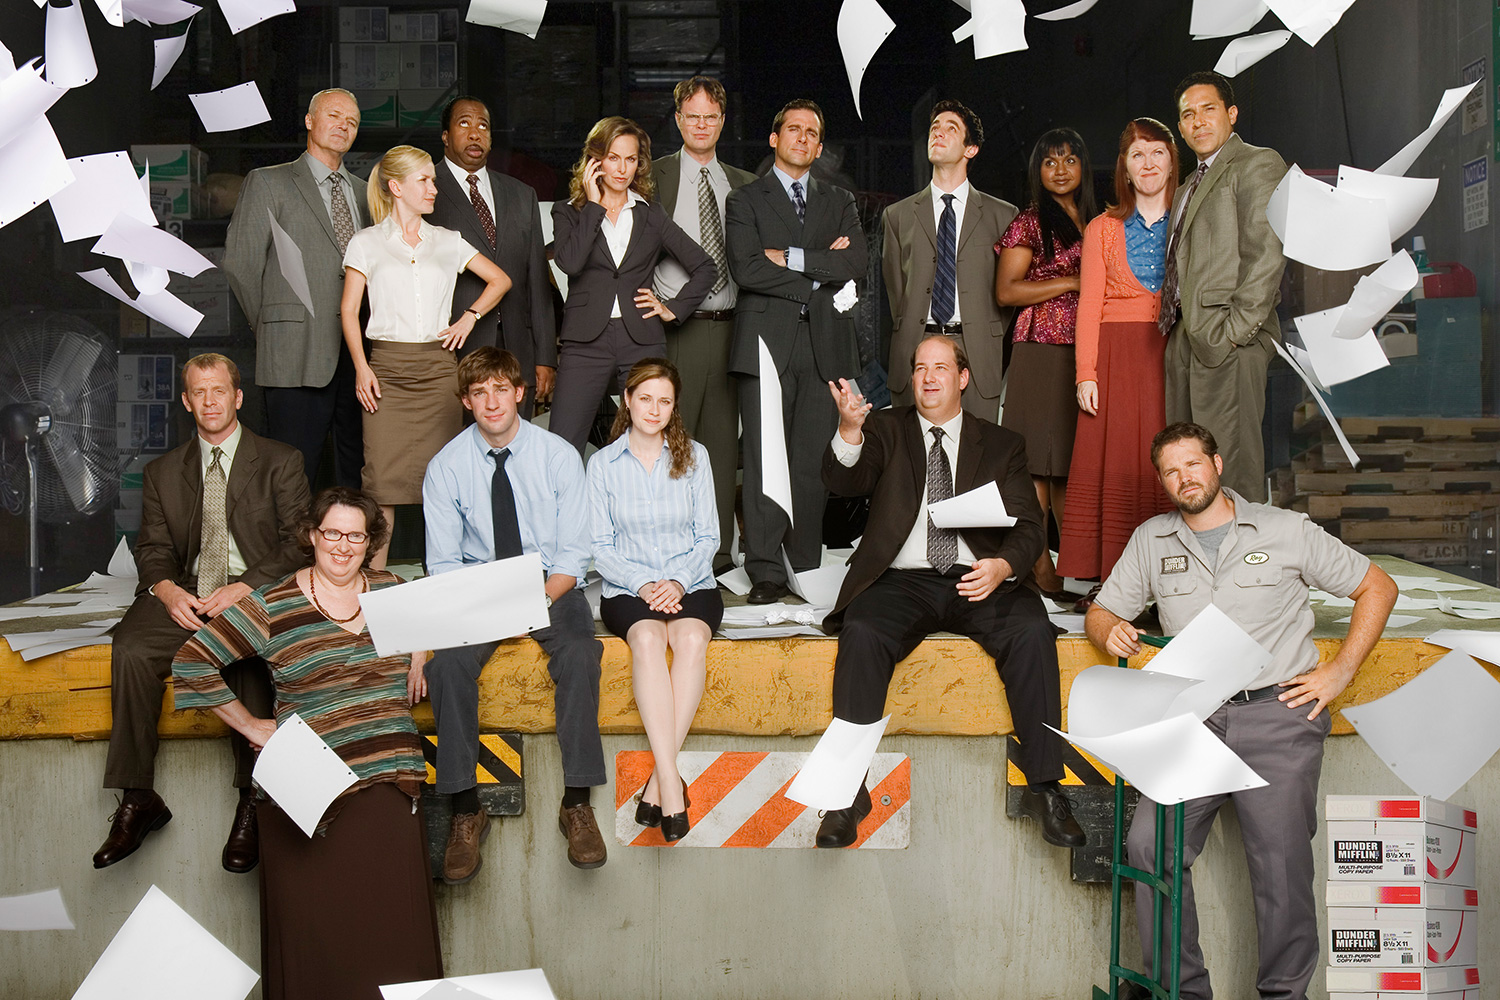 THE OFFICE -- Season 3 -- Pictured: (l-r) Front Row: Paul Lieberstein as Toby Flenderson, Phyllis Smith as Phyllis Lapin, John Krasinski as Jim Halpert, Jenna Fischer as Pam Beesly, Brian Baumgartner as Kevin Malone, Oscar Nuûez as Oscar Martinez, David Denman as Roy Anderson; Back Row: Leslie David Baker as Stanley Hudson, Angela Kinsey as Angela Martin, Creed Bratton as Creed Bratton, Melora Hardin as Jan Levinson, Steve Carell as Michael Scott, Rainn Wilson as Dwight Schrute, B.J. Novak as Ryan Howard, Mindy Kaling as Kelly Kapoor, Kate Flannery as Meredith Palmer